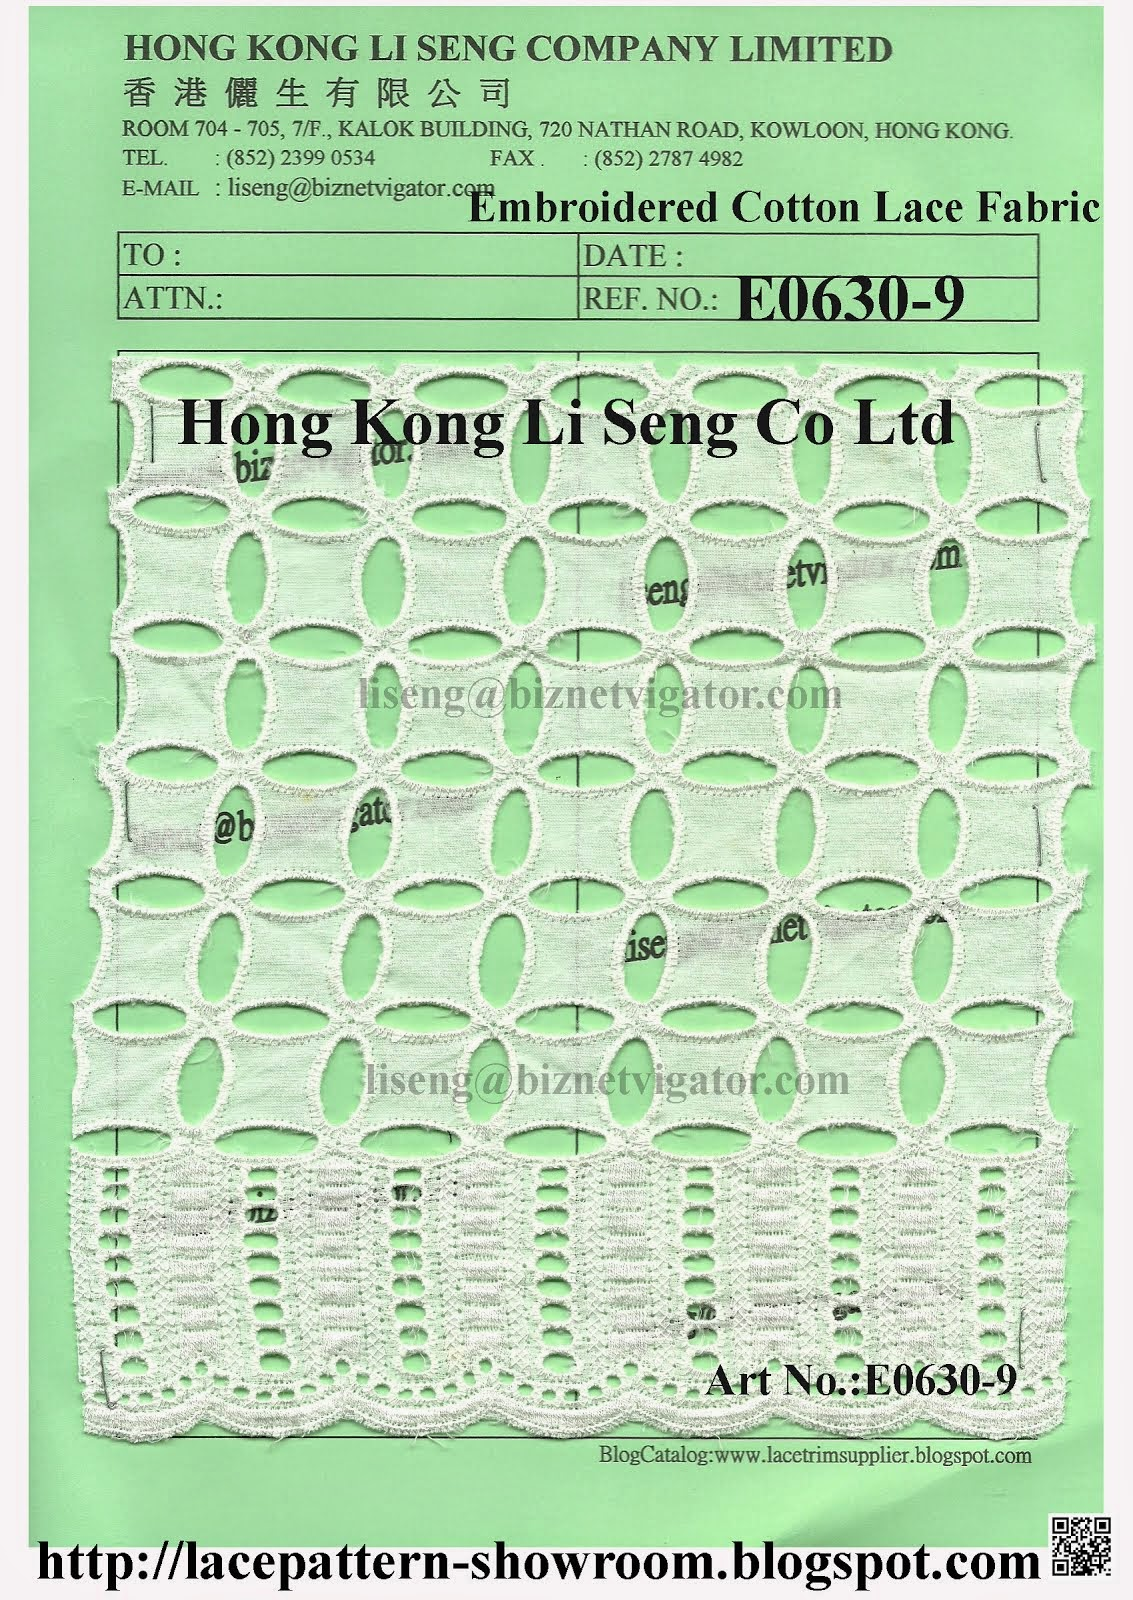 New Embroidered Cotton Lace Fabric Manufacturer Wholesale And Supplier - Hong Kong Li Seng Co Ltd